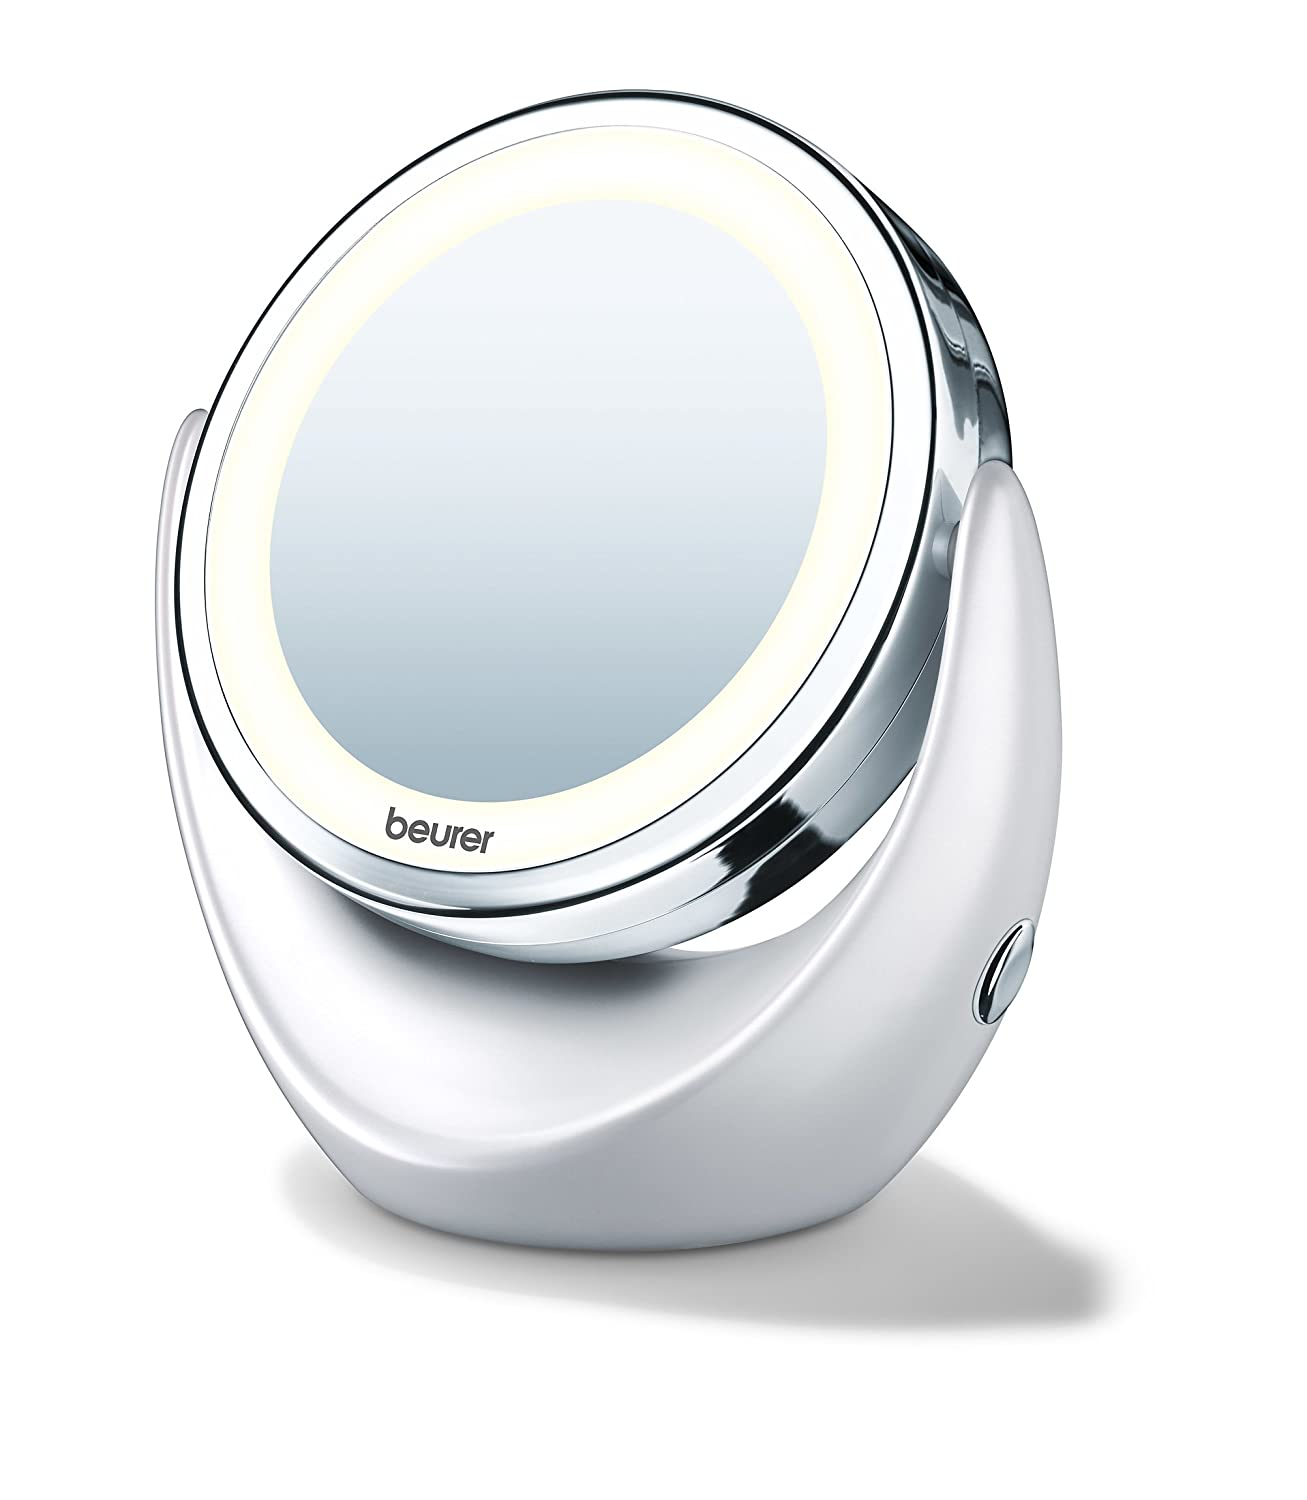 Top 10 Best LED Lighted Vanity Makeup Mirrors for Women 2016-2017 on Flipboard